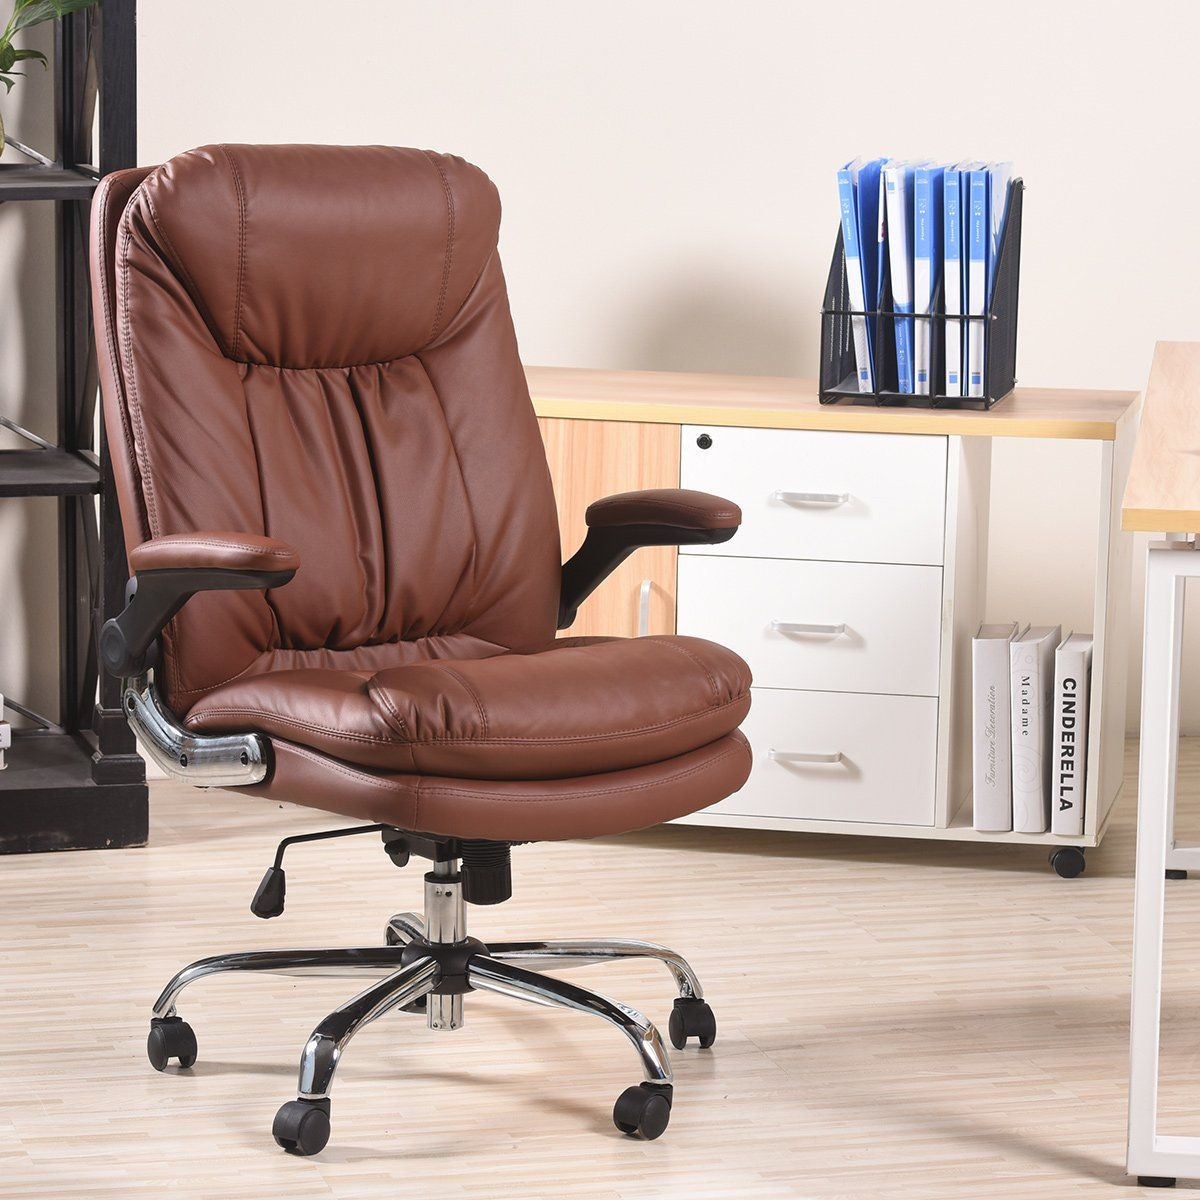 Yamasoro Ergonomic High Back Executive Office Chair Pu Leather Computer Gaming Desk Chai Executive Office Chairs